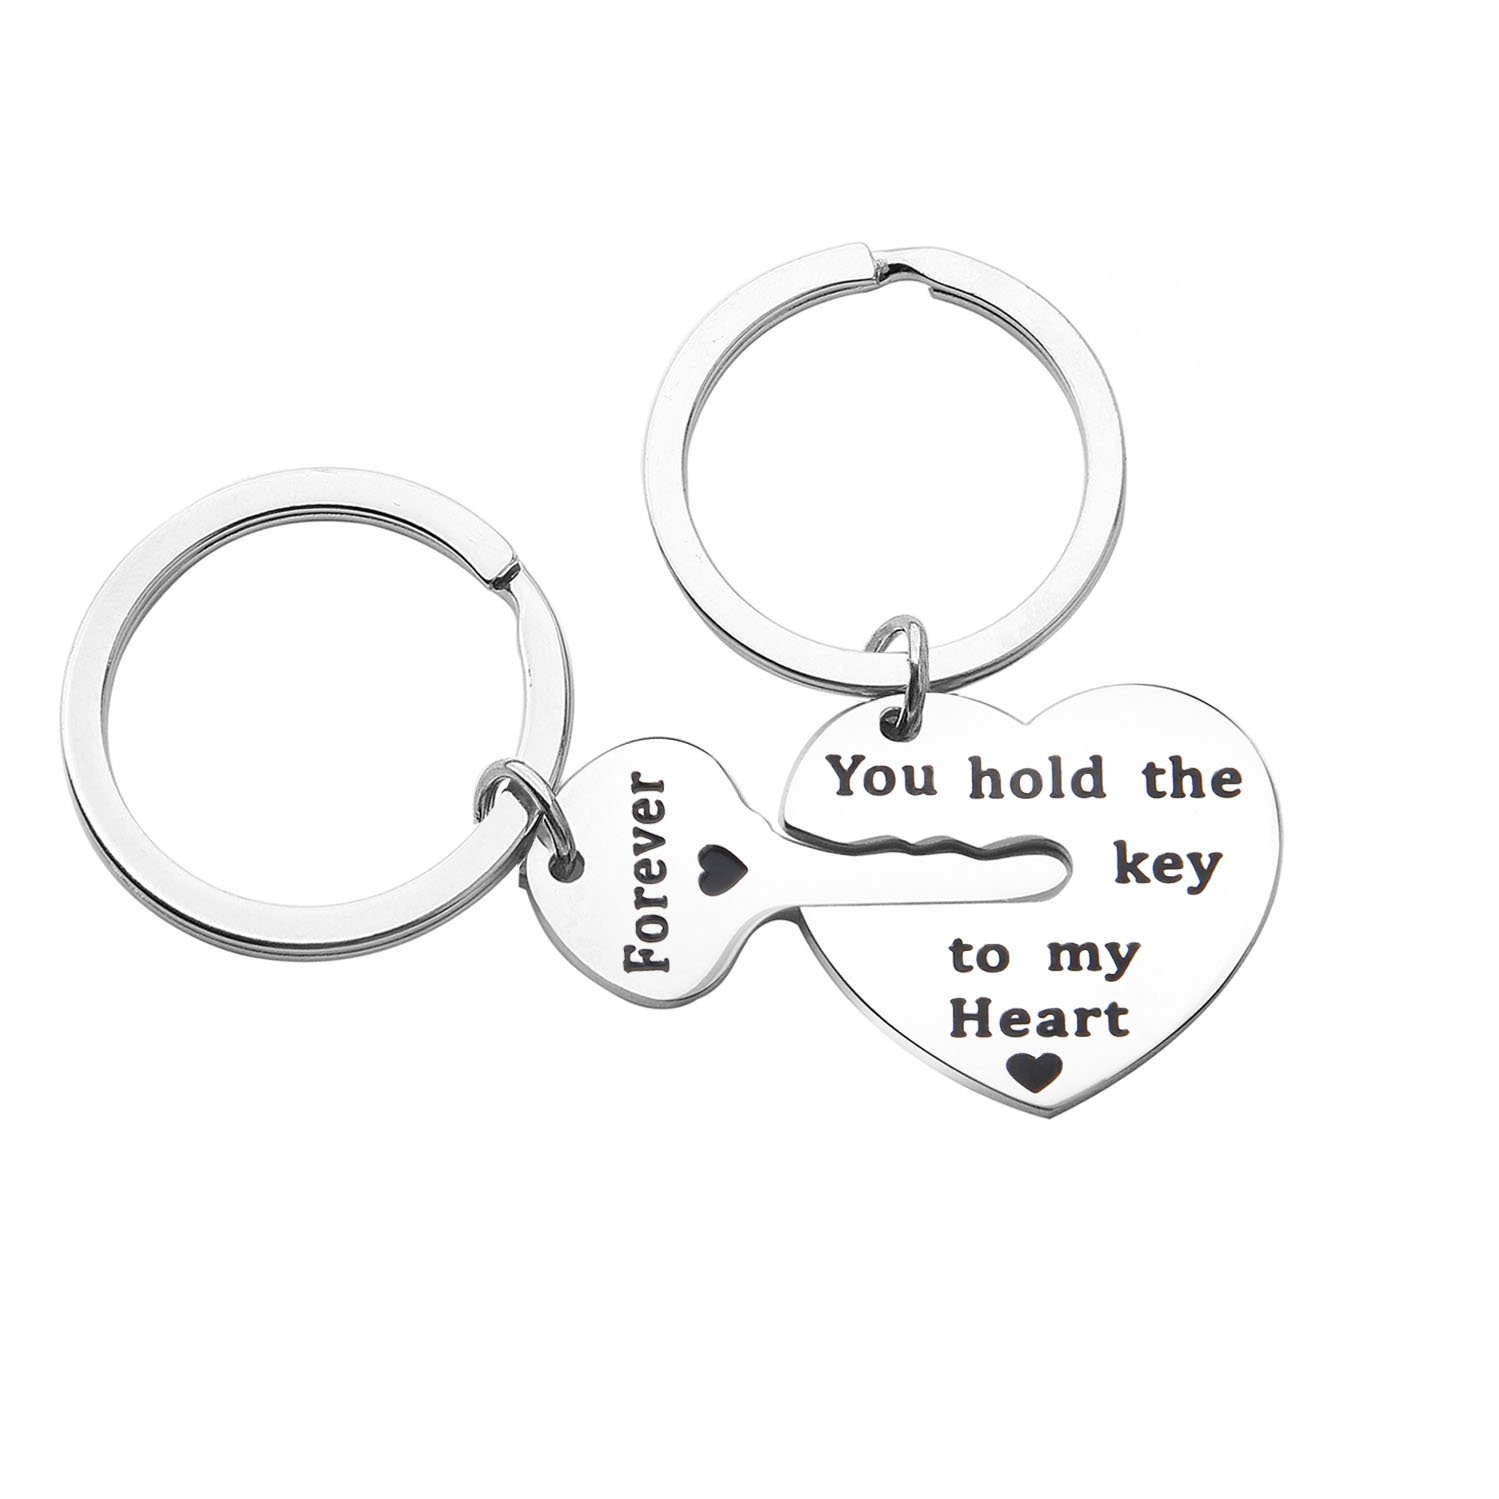 Couples Keychain Set You Hold The Key to My Heart Forever Jewelry for BBF KUIYAI